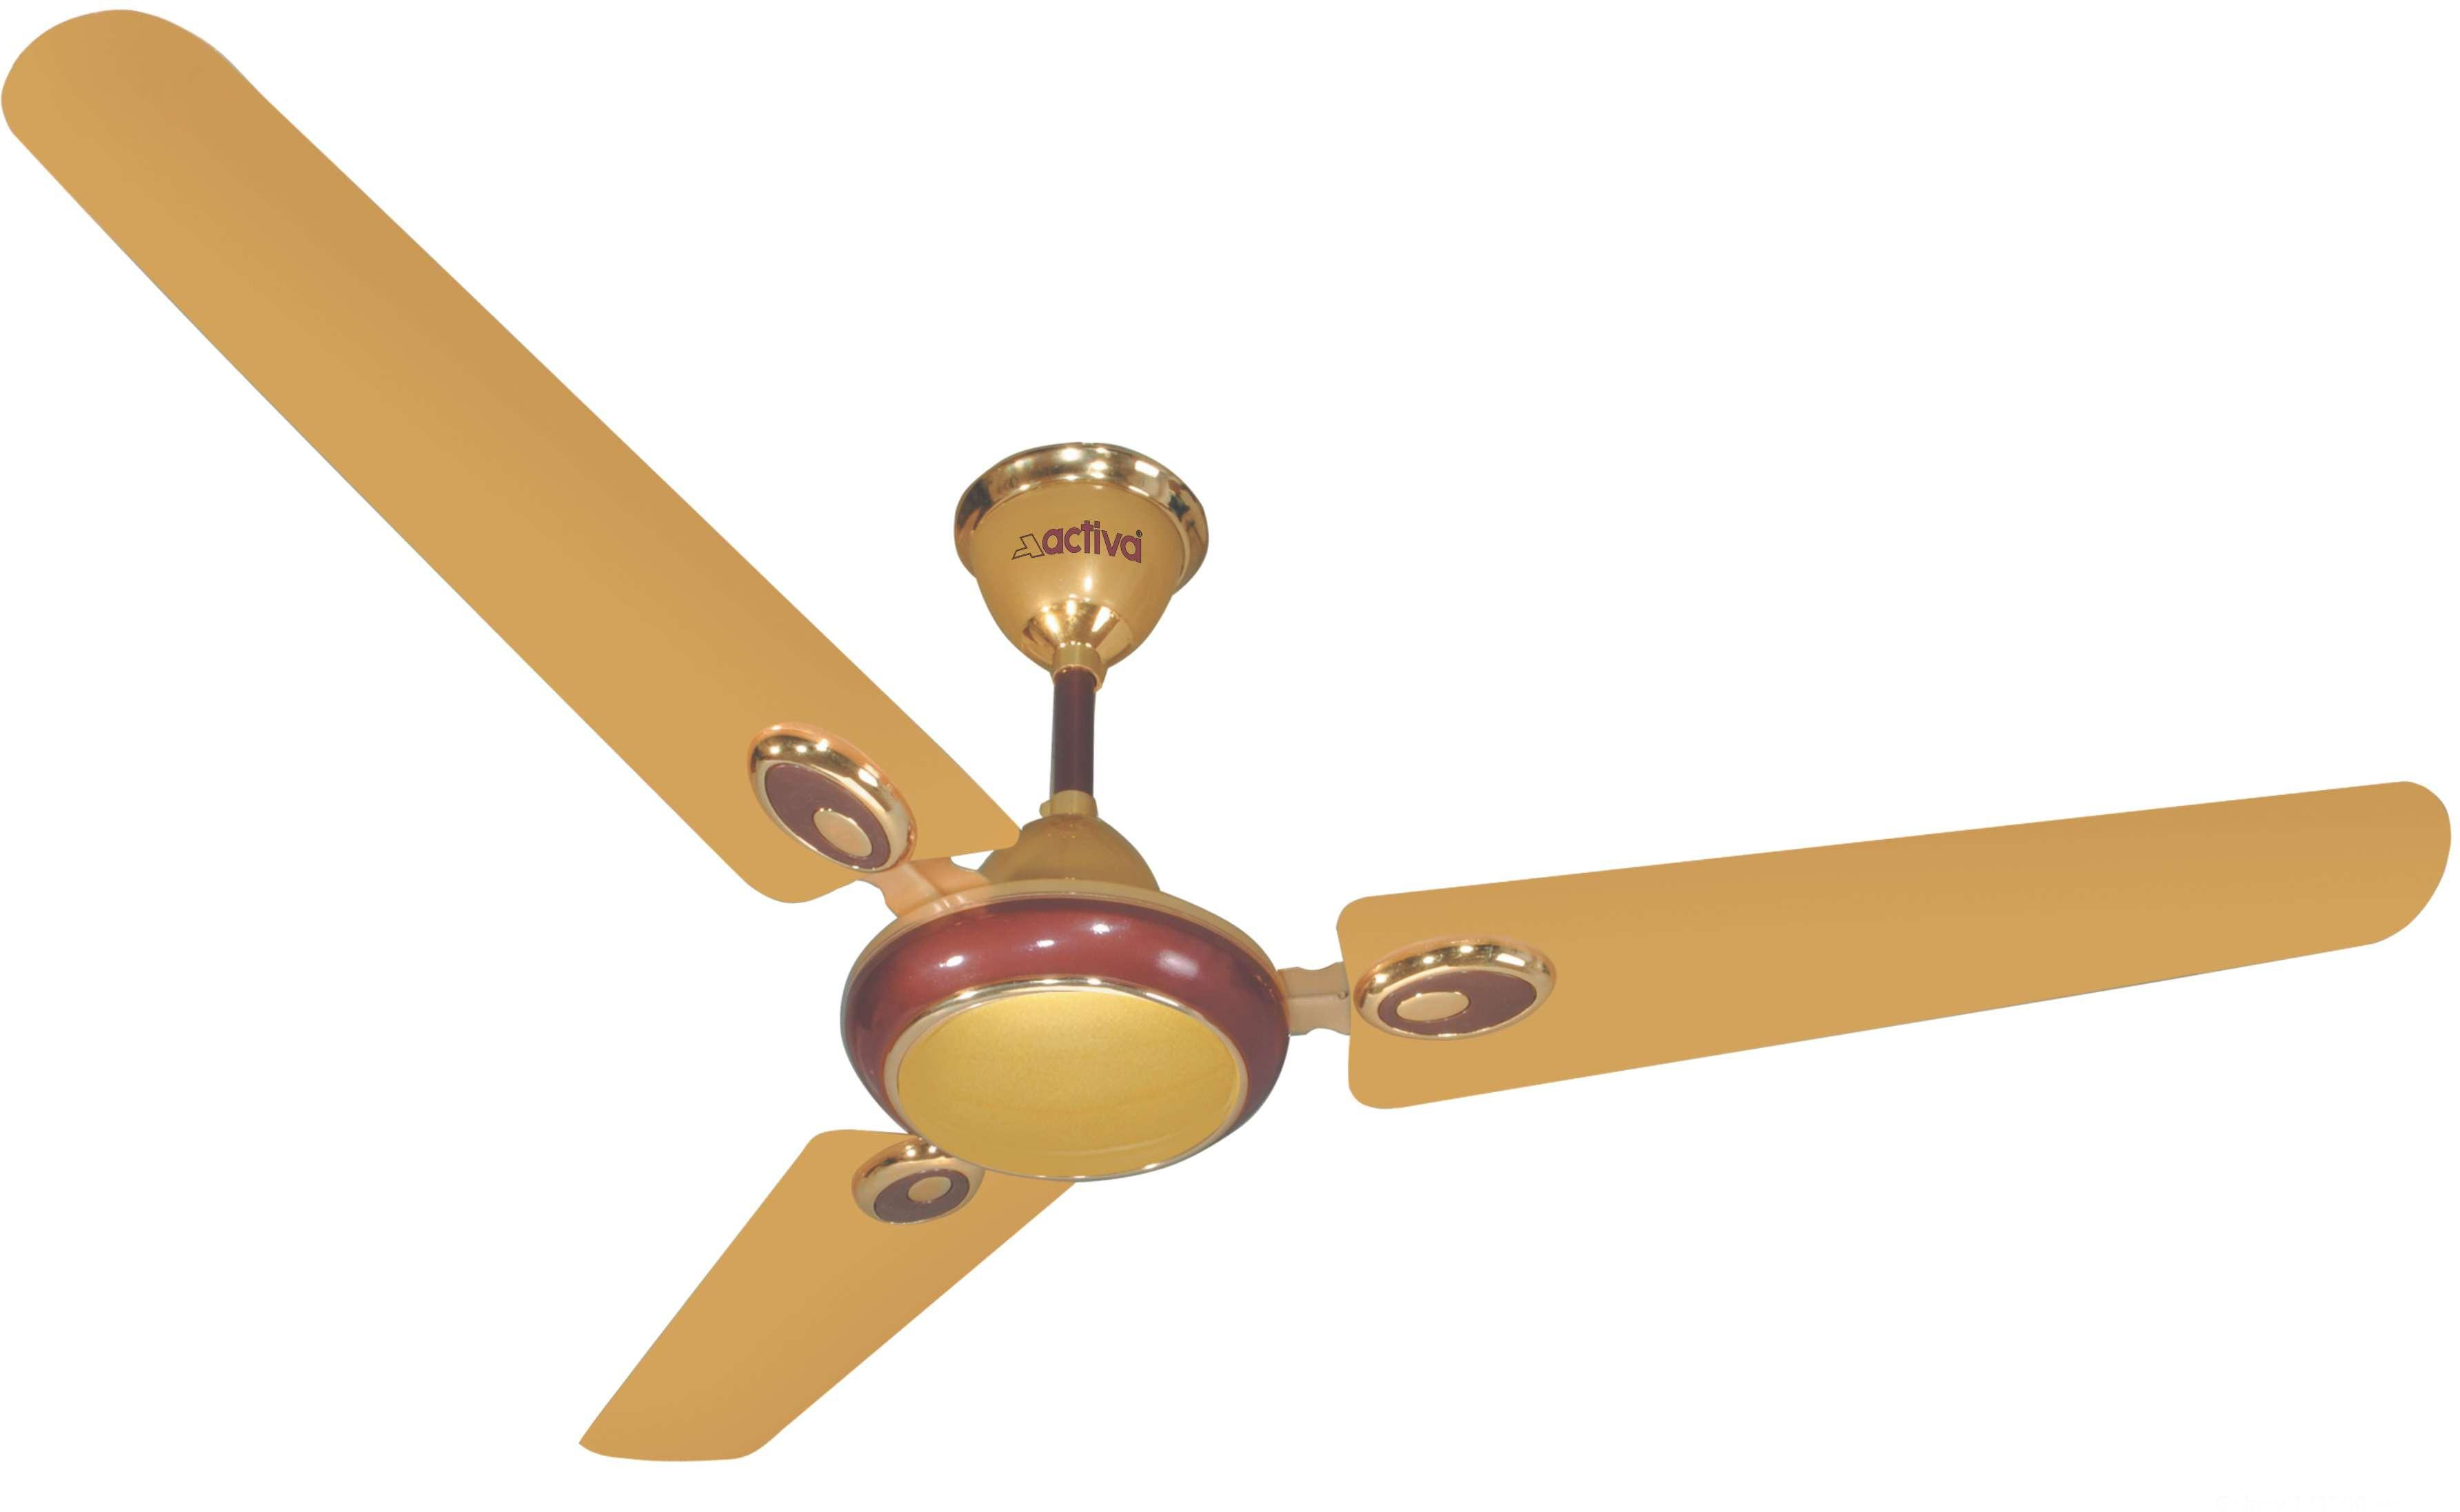 Activa 48 Galaxy 1 5 Star Ceiling Fan Beige In India S And Specifications Payback